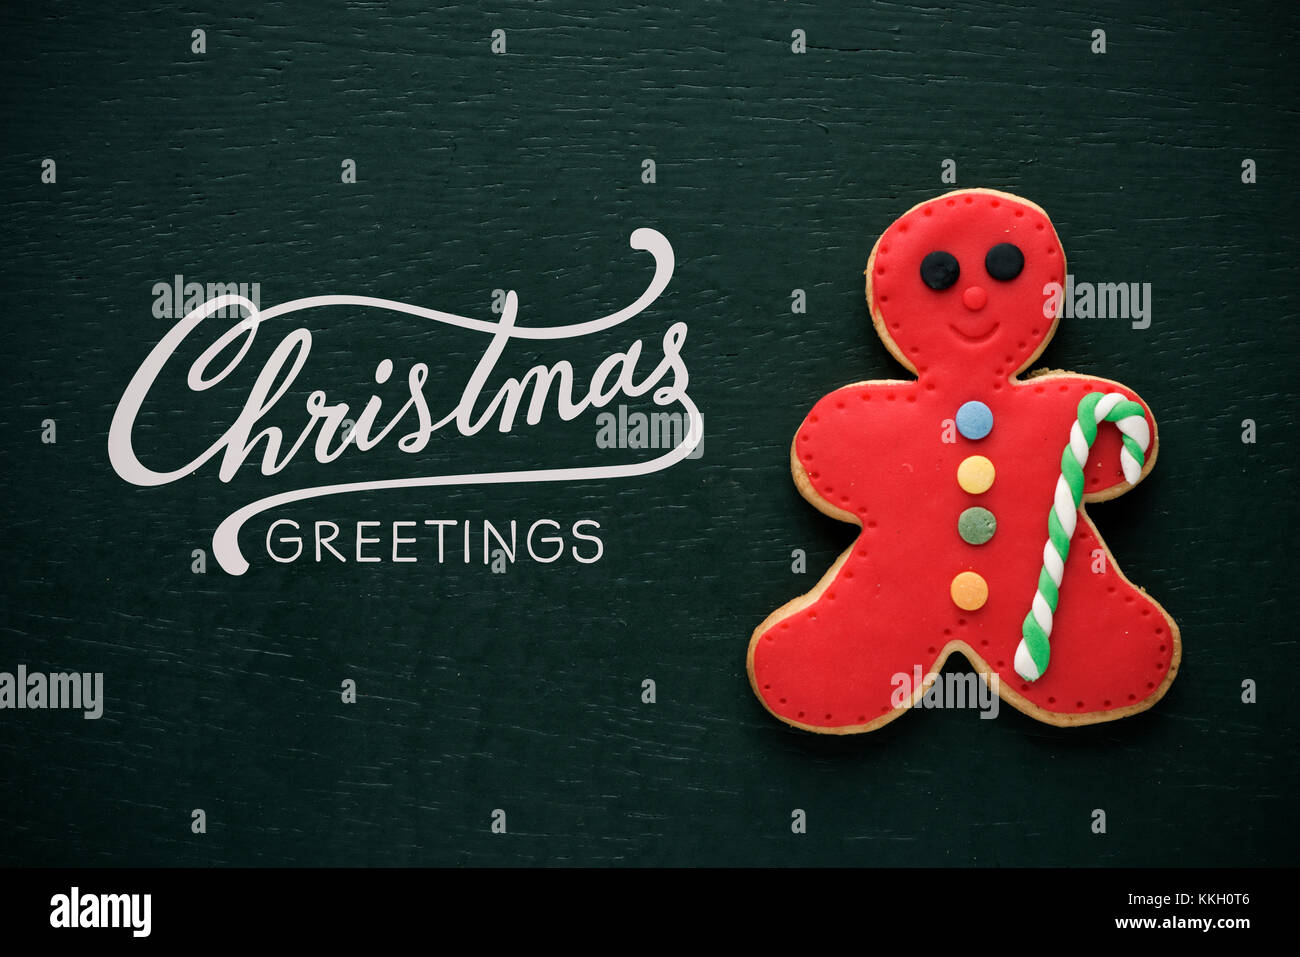 a coloroful cookie in the shape of a gingerbread man and the text christmas greetings on a dark green background - Stock Image